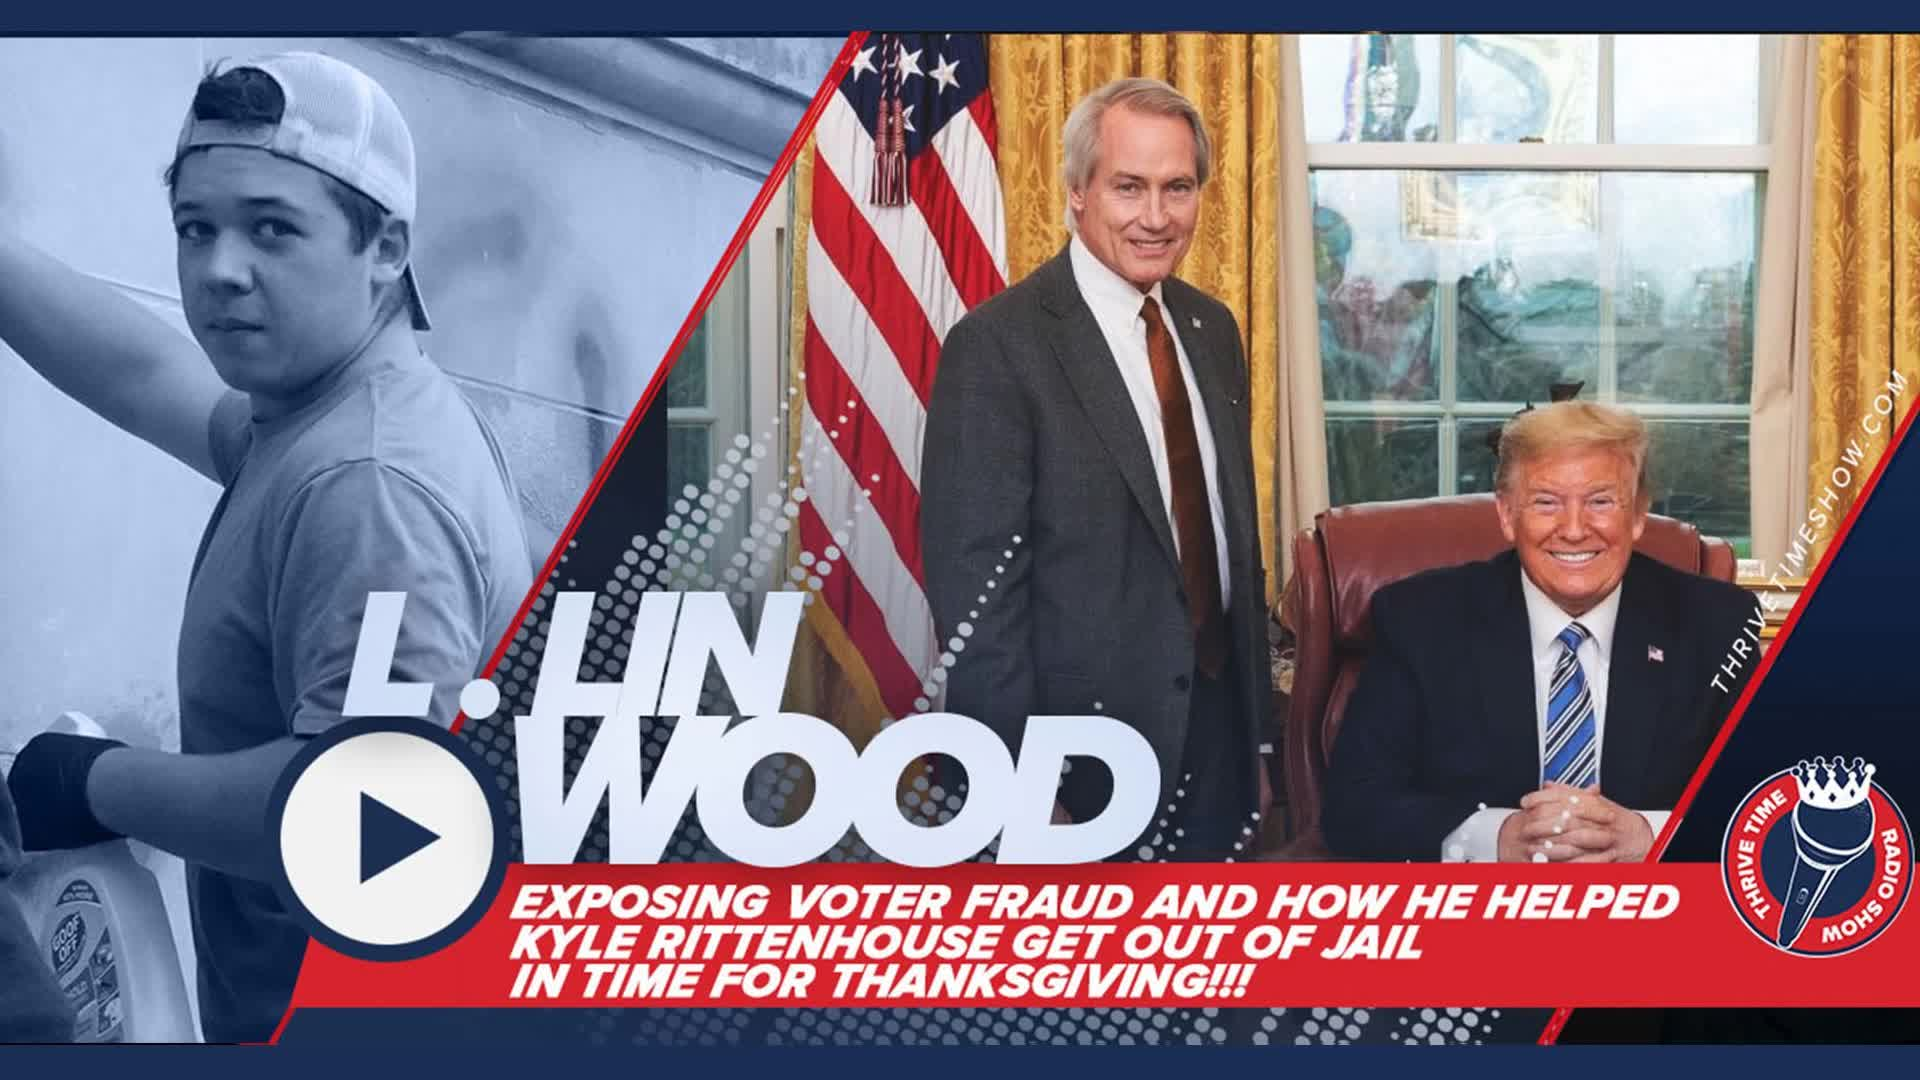 BOMBSHELL VOTER FRAUD REVEALED!!! | Lin Wood Exposes Voter Fraud and Shares How Kyle Rittenhouse...